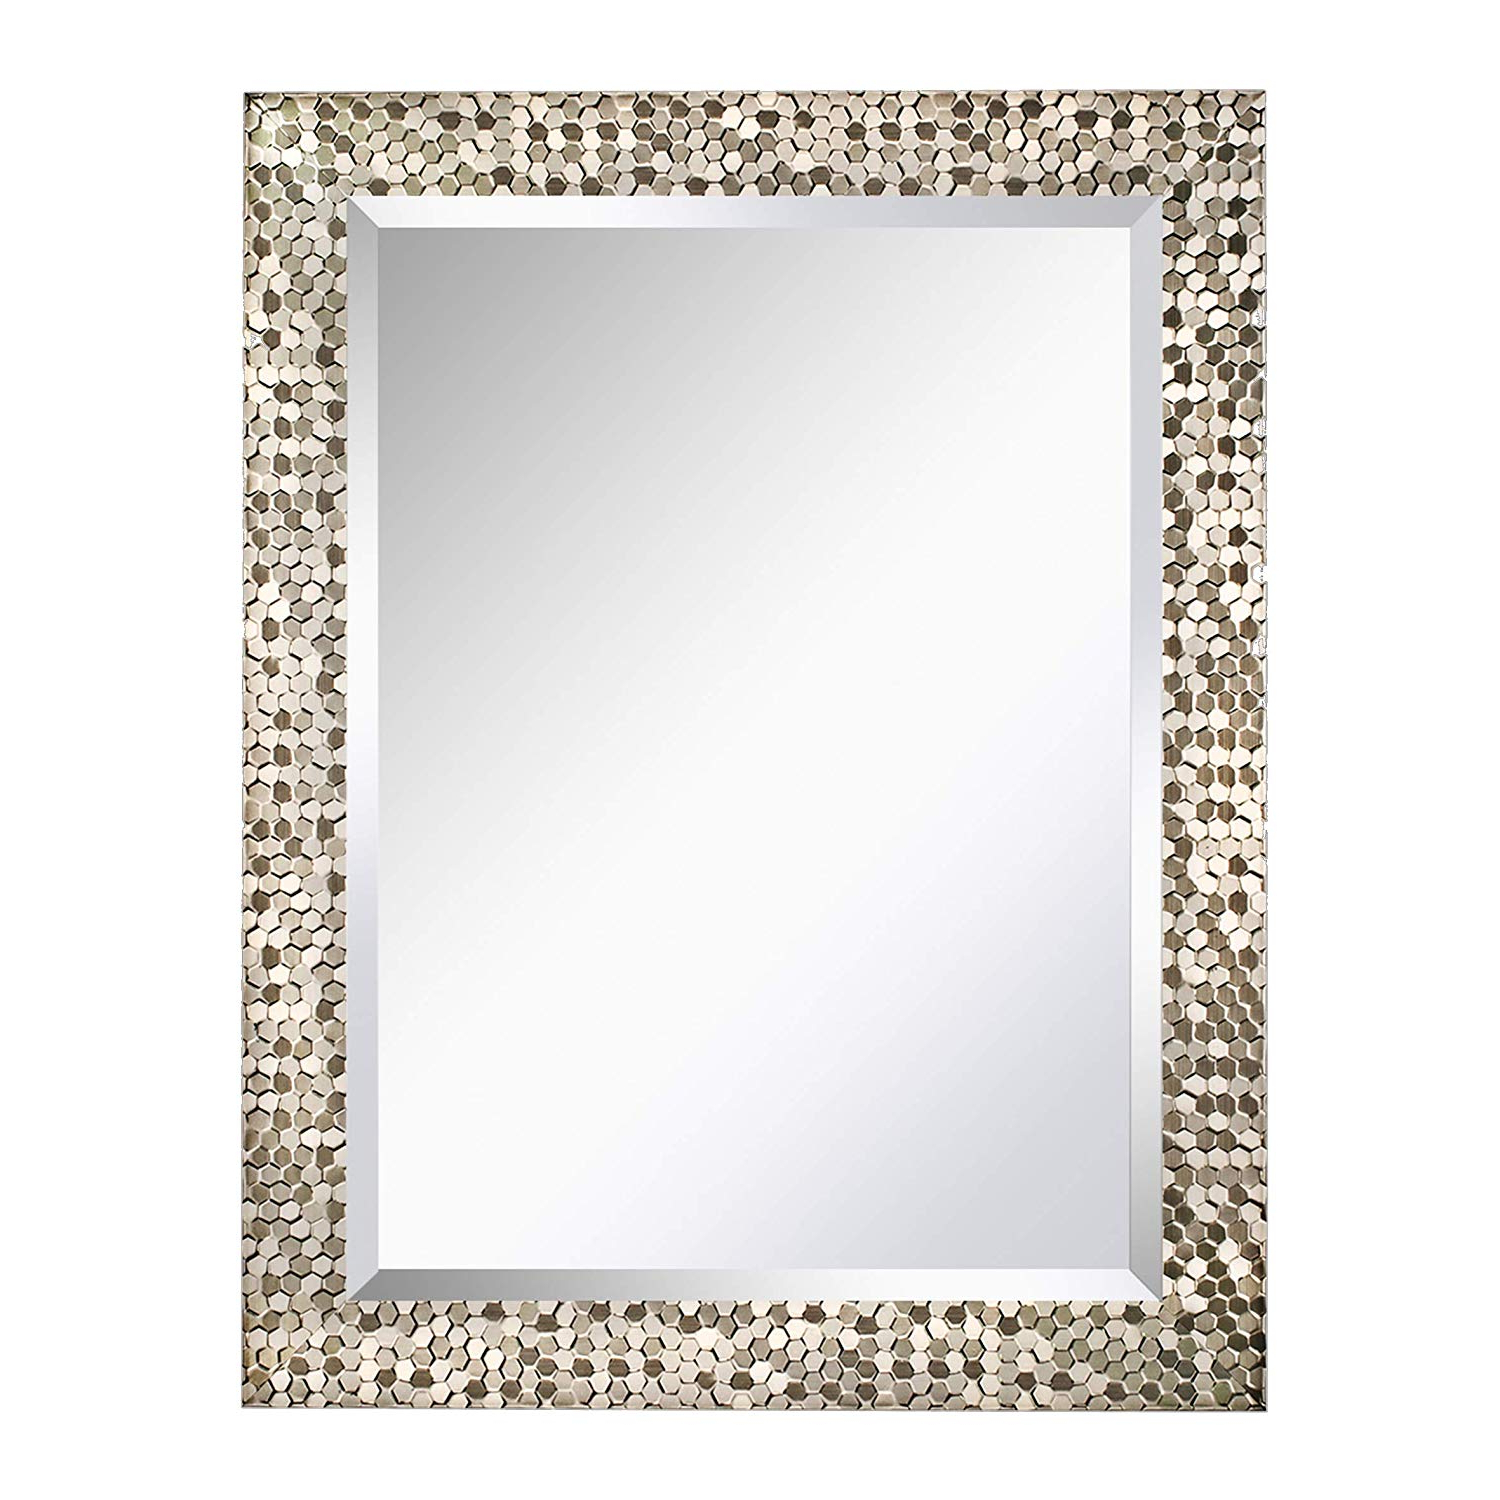 "Popular Decorative Large Wall Mirrors Throughout Mirror Trend 24"" X 32"" Square Beveled Mirrors For Wall Mirrors For Living  Room Large Bathroom Mirrors Wall Mounted Mosaic Design Mirror For Wall (View 14 of 20)"